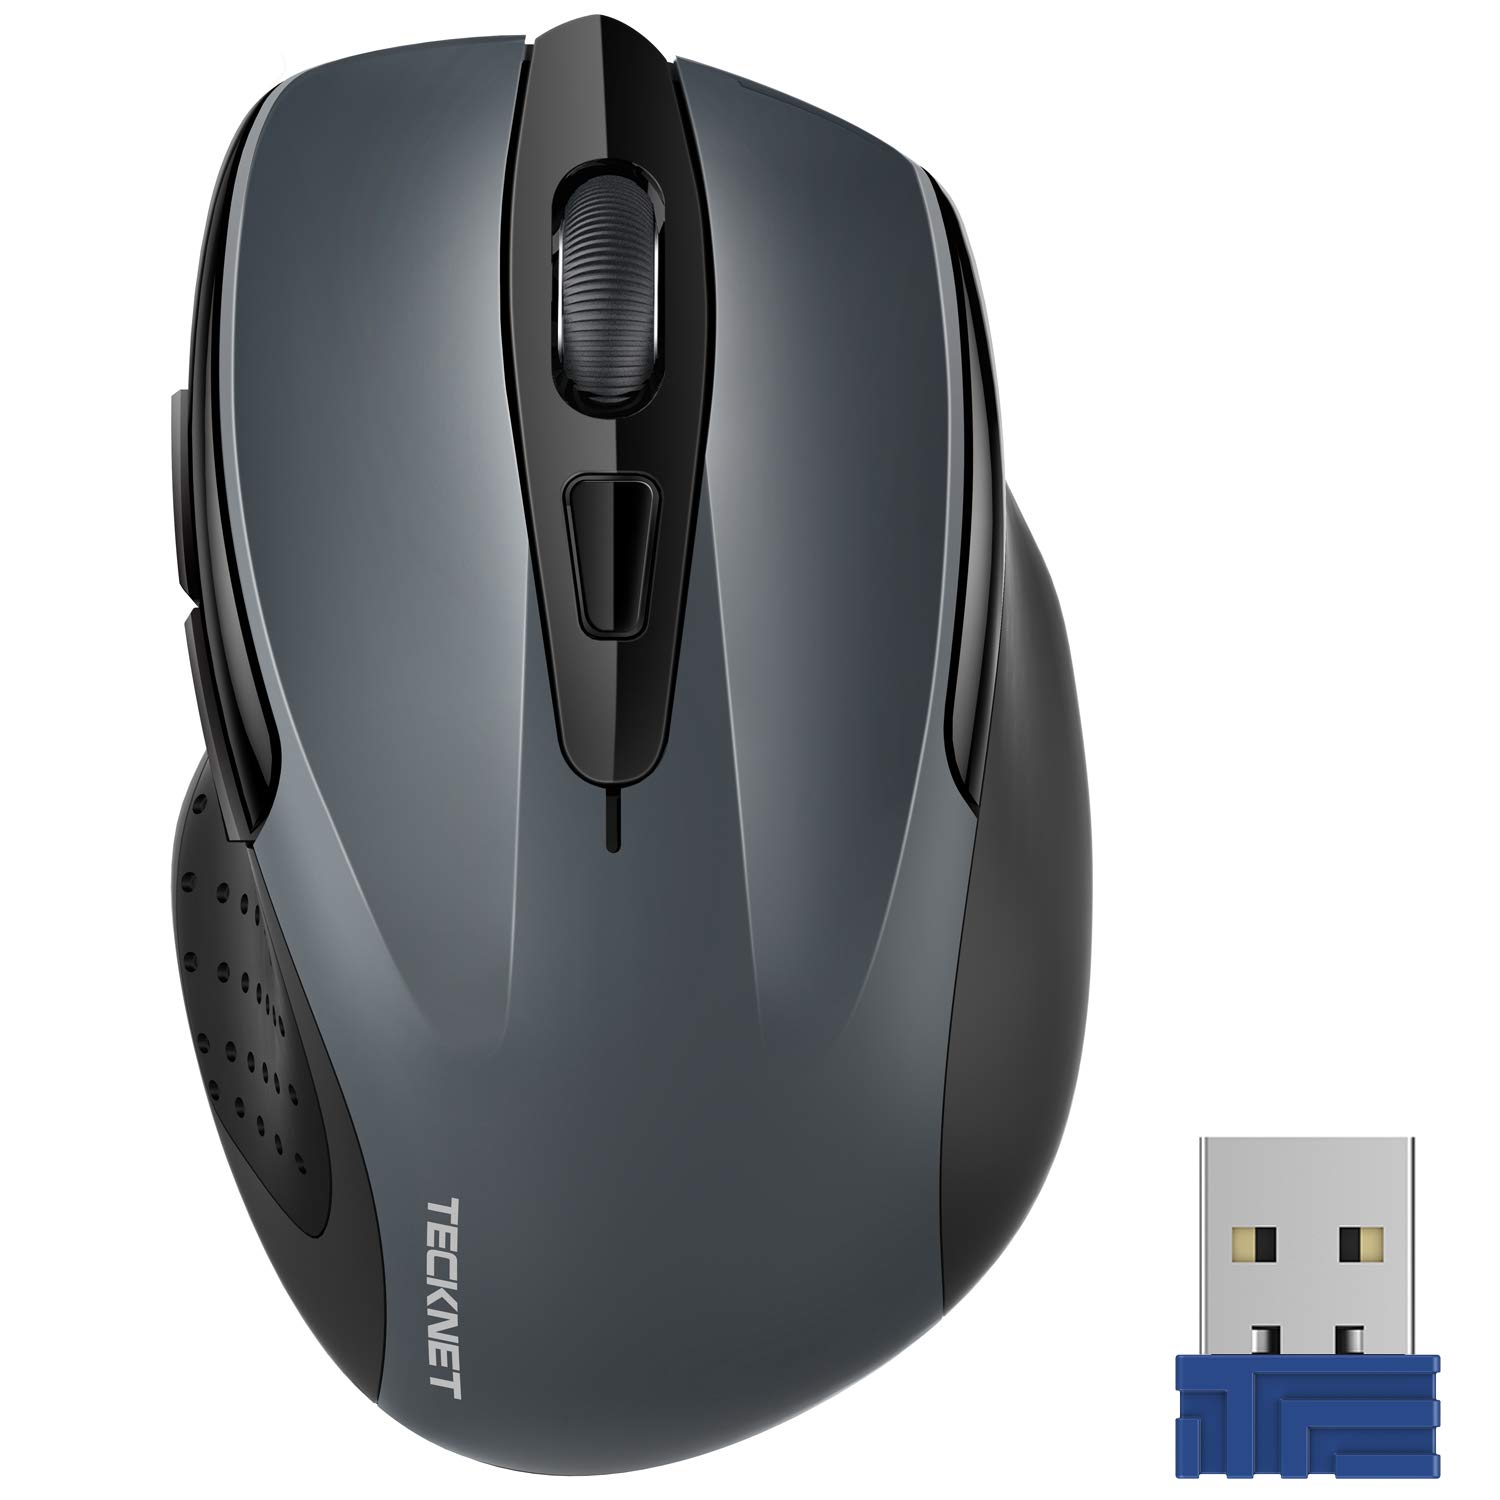 08b97256ff4 Amazon.in: Buy Tecknet M003 2.4G Ergonomic Wireless Mobile Optical Mouse  with USB Nano Receiver (Grey) Online at Low Prices in India | Tecknet  Reviews & ...